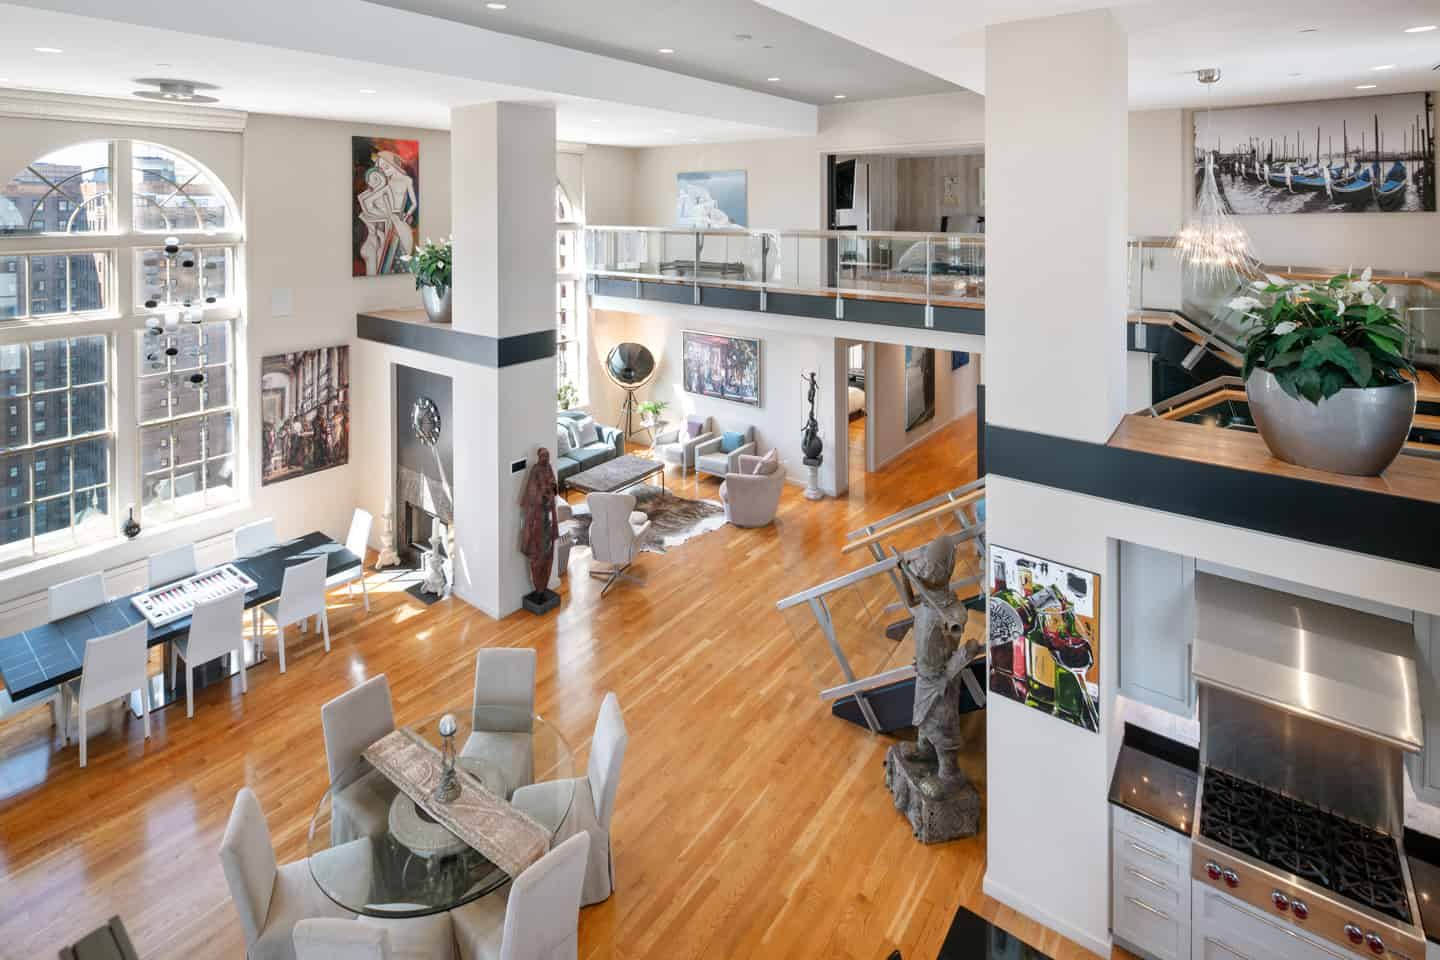 Real Estate Photographs of a Luxury Penthouse on Locust Street, in Philadelphia, PA